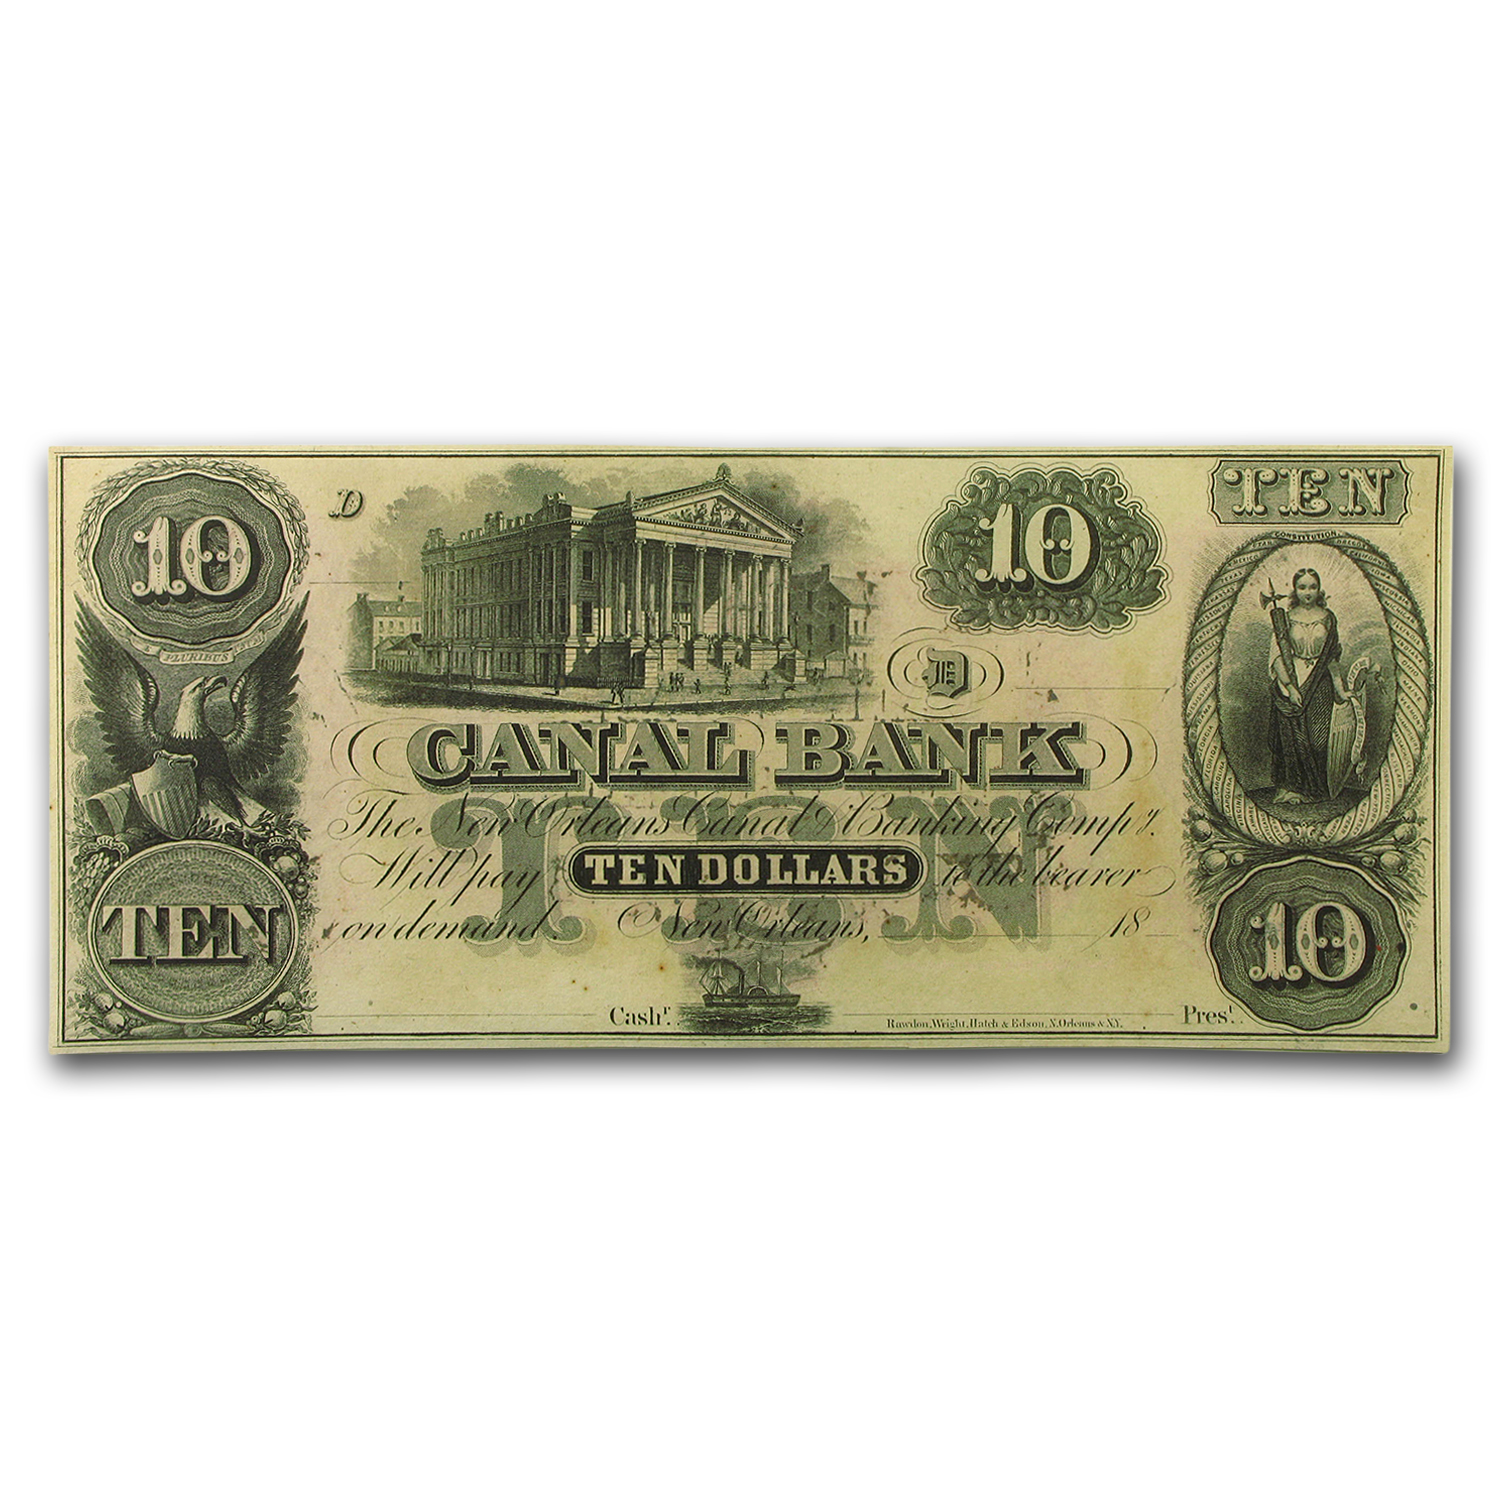 18__ Canal Bank of New Orleans $10.00 Note LA-105 CU